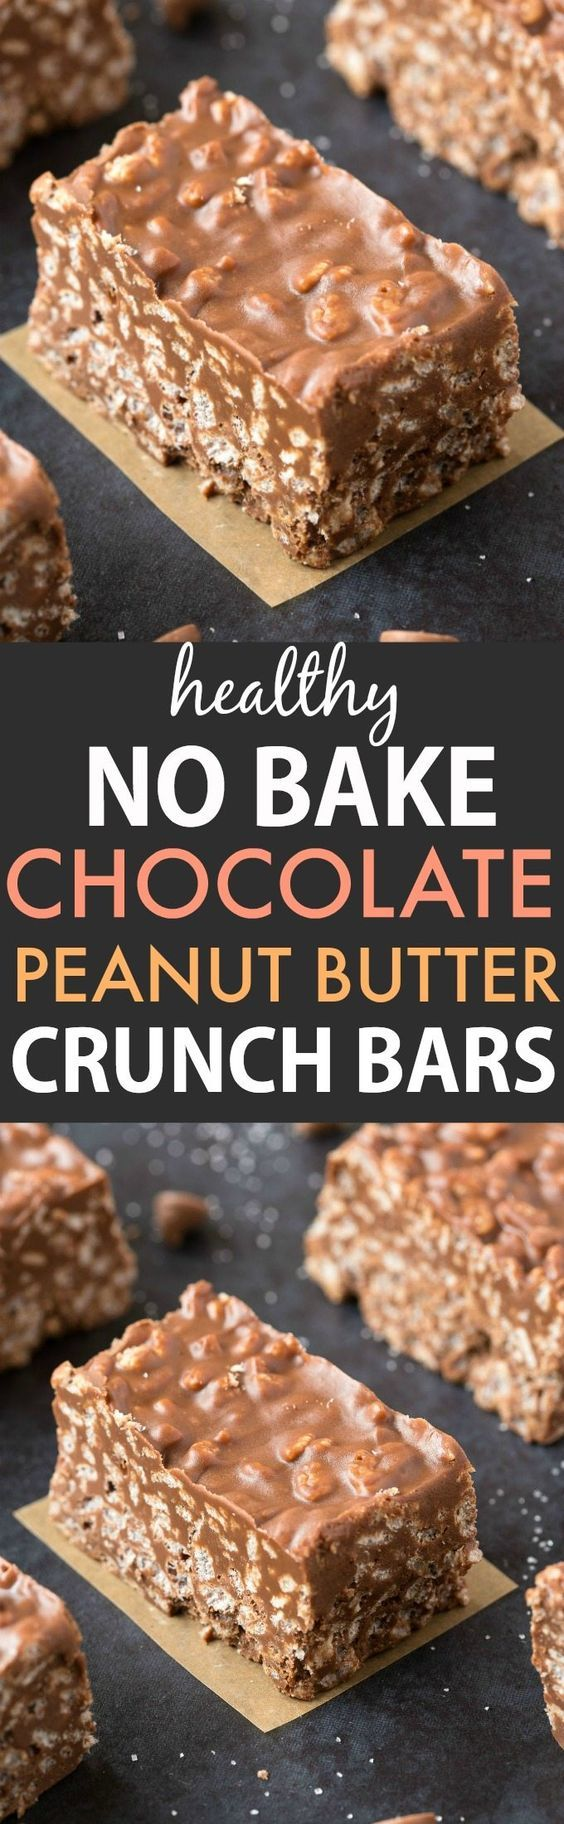 Healthy No Bake Chocolate Peanut Butter Crunch Bars (Vegan, Gluten Free)- Easy copycat crunch bar candy recipe using healthy ingredients!